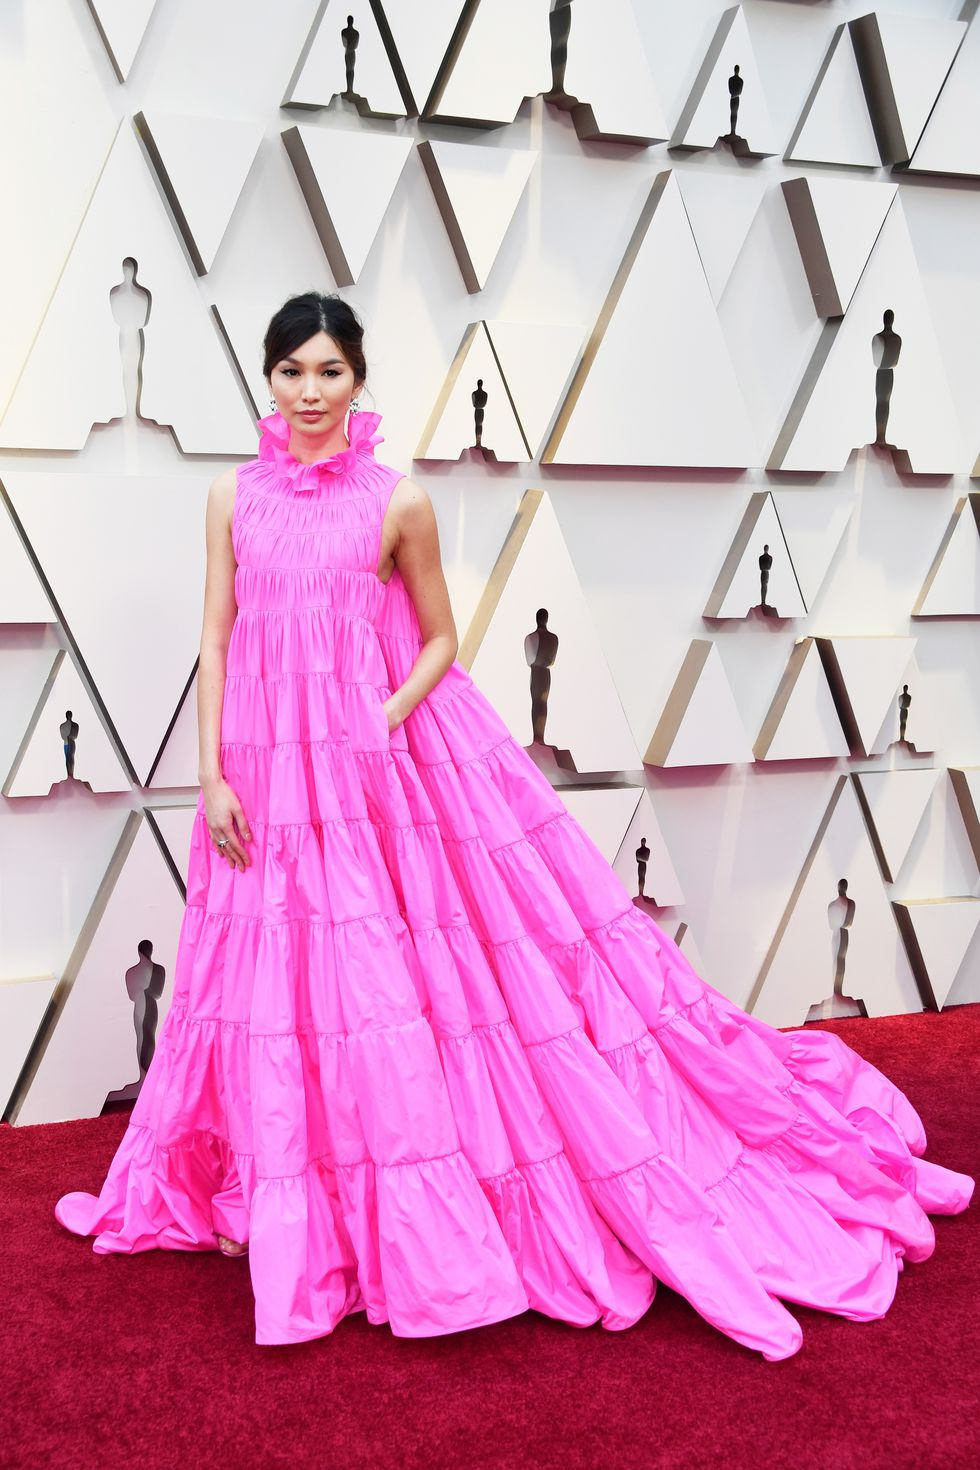 Oscars 2019: Hollywood thinks pink